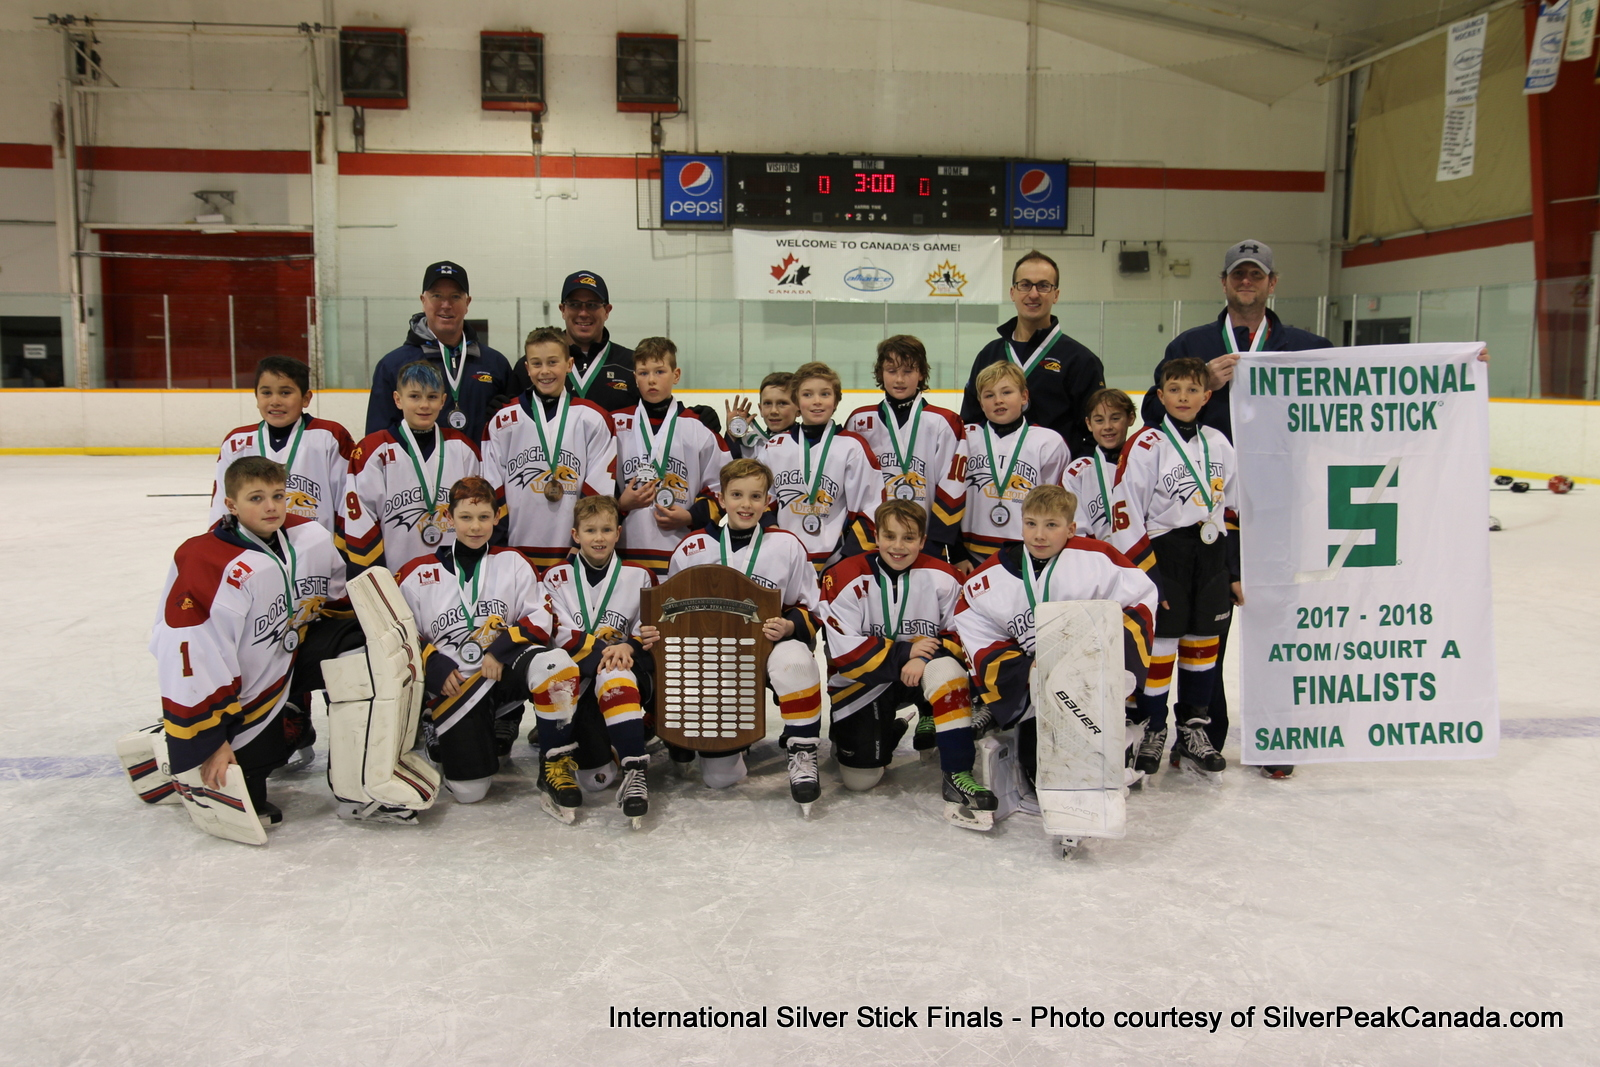 Silver Stick Finals Photos Sarnia SilverPeak Studios Action Photography Atom A Finalists